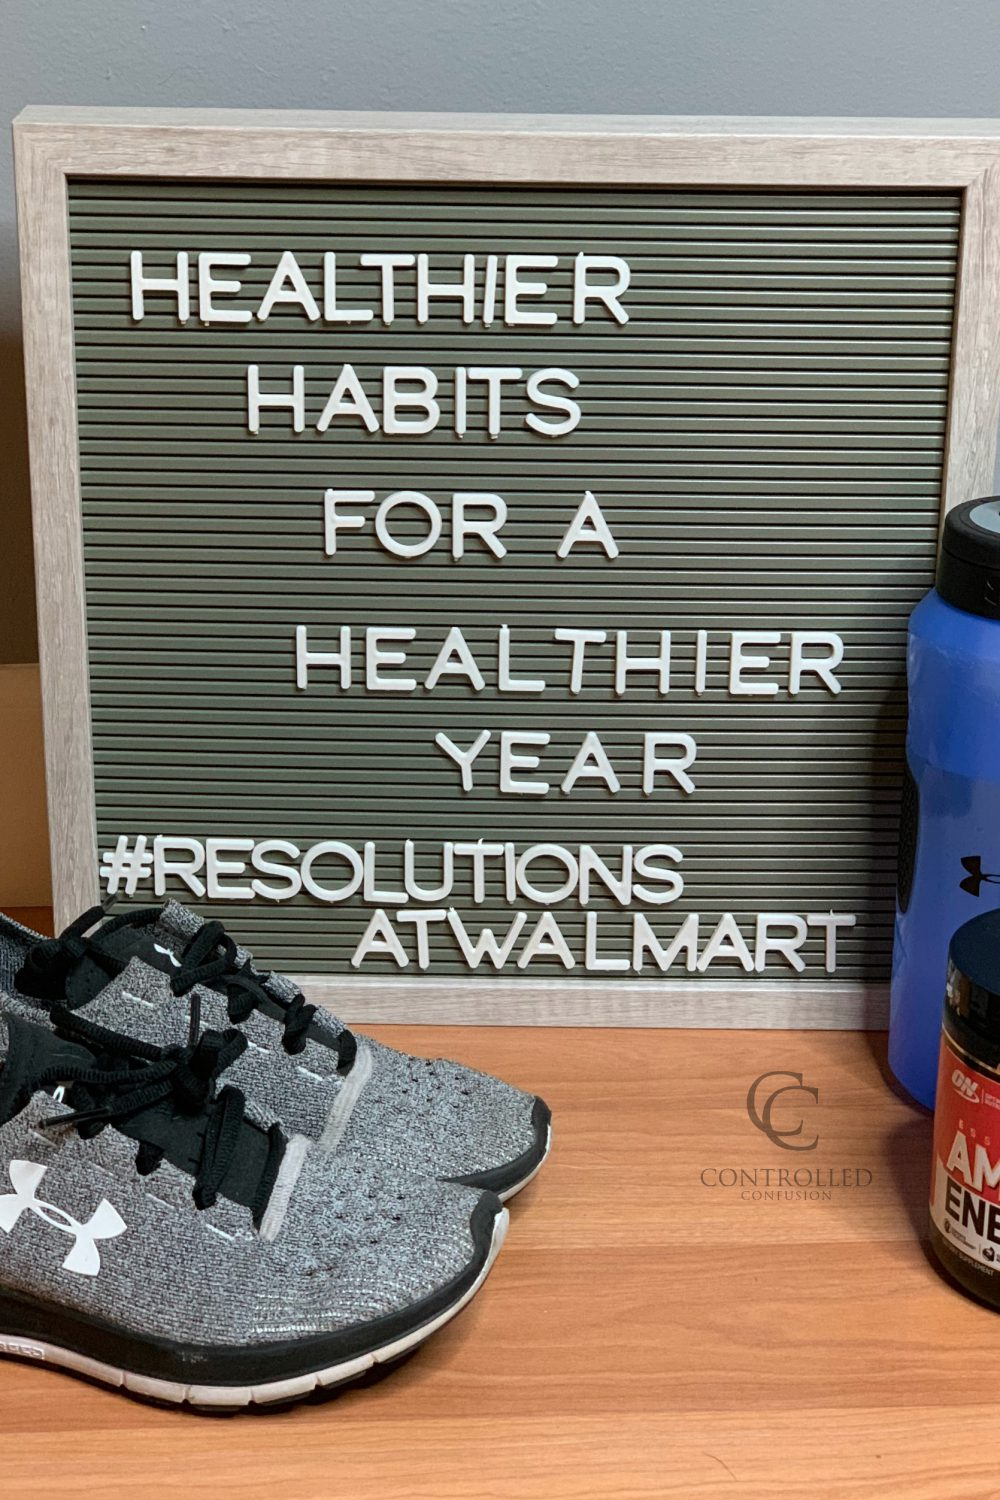 Adapt Healthier Habits for a Healthier Year